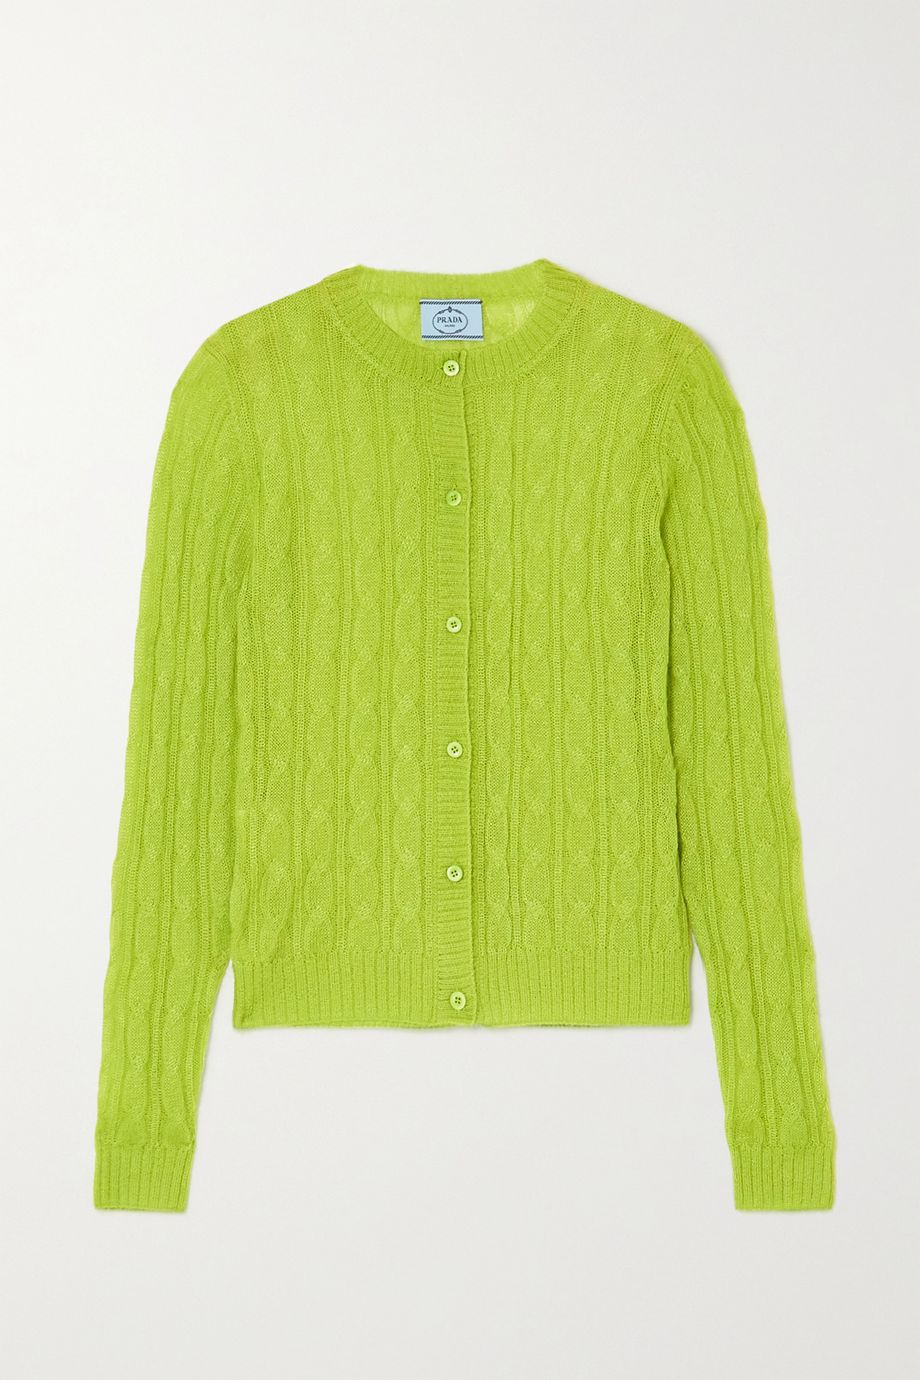 Prada Cable-knit cardigan